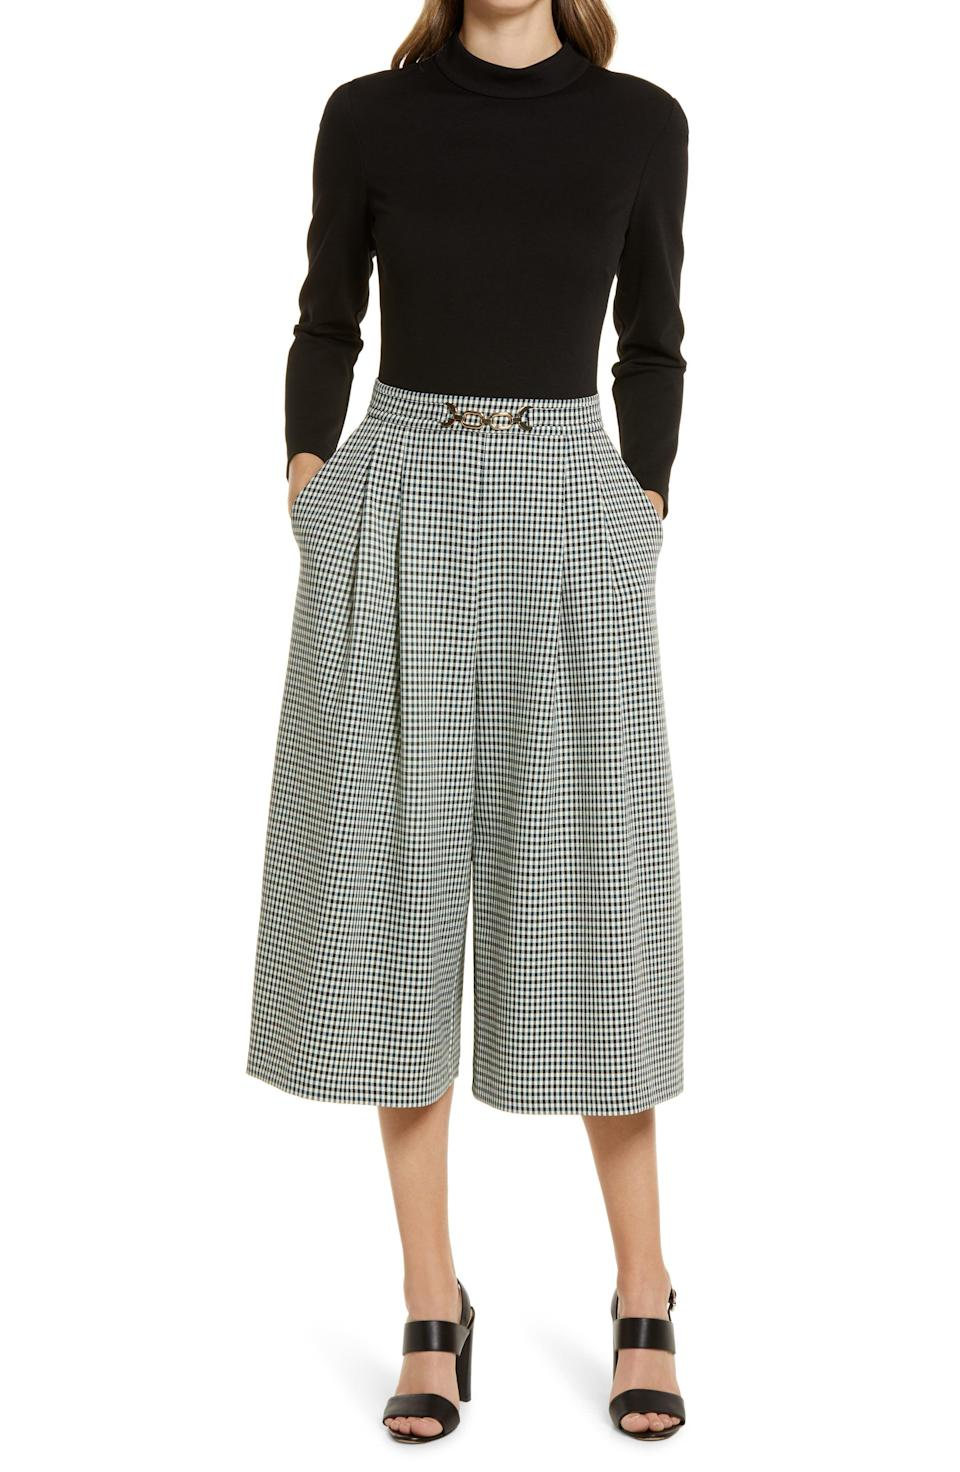 """<p><strong>ELIZA J</strong></p><p>nordstrom.com</p><p><a href=""""https://go.redirectingat.com?id=74968X1596630&url=https%3A%2F%2Fwww.nordstrom.com%2Fs%2Feliza-j-twoffer-wide-leg-jumpsuit%2F5607769&sref=https%3A%2F%2Fwww.harpersbazaar.com%2Ffashion%2Ftrends%2Fg36946278%2Fnordstrom-anniversary-sale-fashion%2F"""" rel=""""nofollow noopener"""" target=""""_blank"""" data-ylk=""""slk:Shop Now"""" class=""""link rapid-noclick-resp"""">Shop Now</a></p><p><strong>Sale: $100</strong></p><p><strong>After Sale: $168</strong></p><p> If you're returning to an office setting soon, this jumpsuit will come in handy as it requires bare minimum effort while being immensely chic. </p>"""